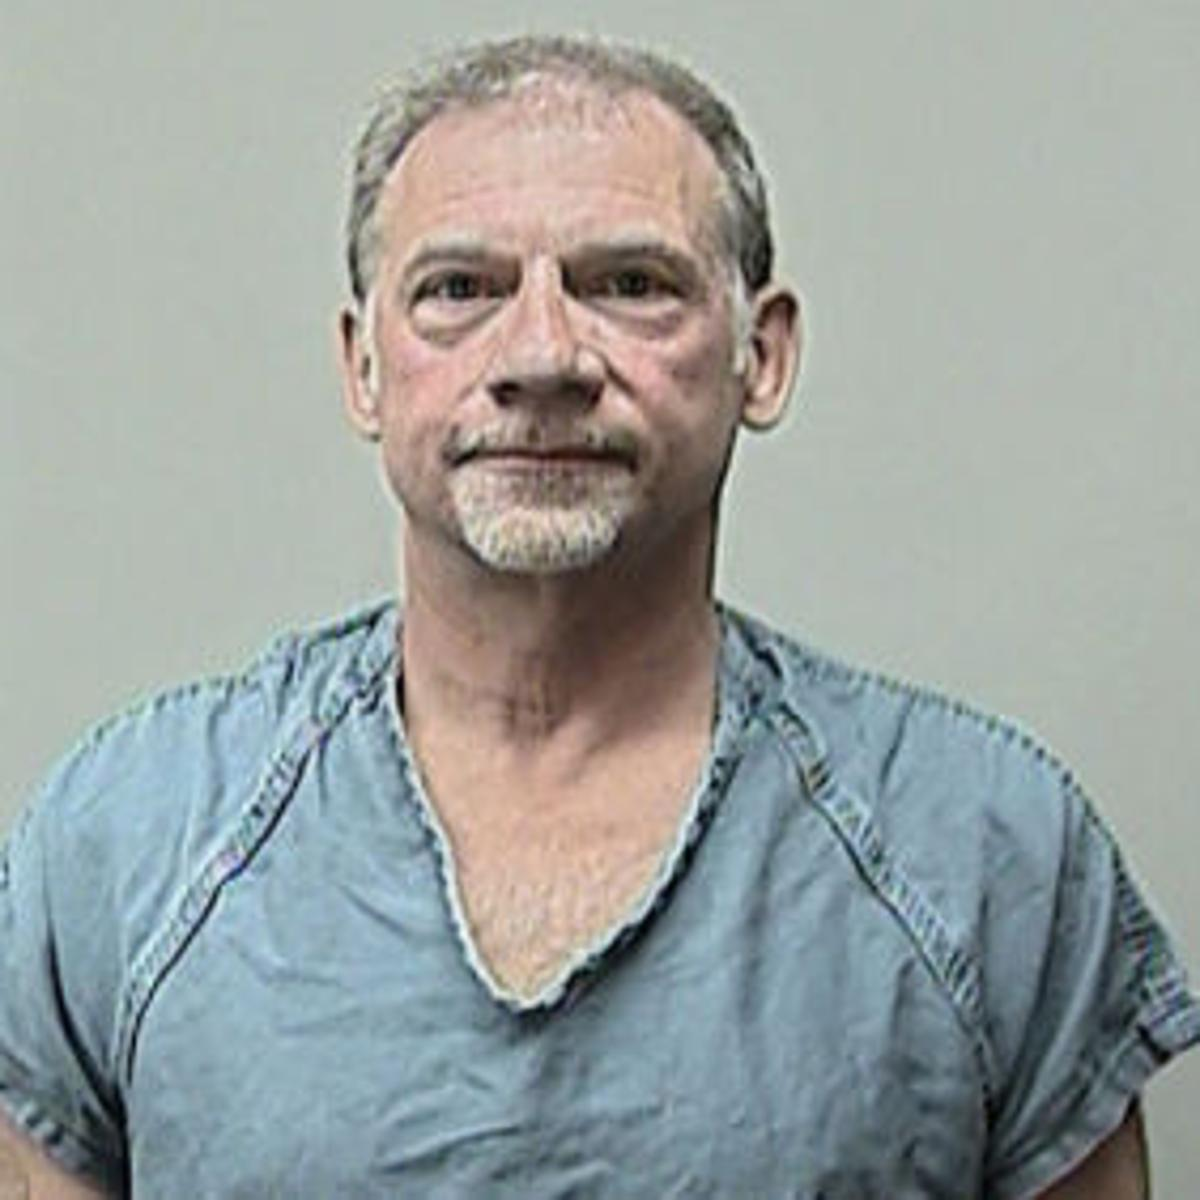 Lutheran Bishop charged in fatal crash | State-and-regional